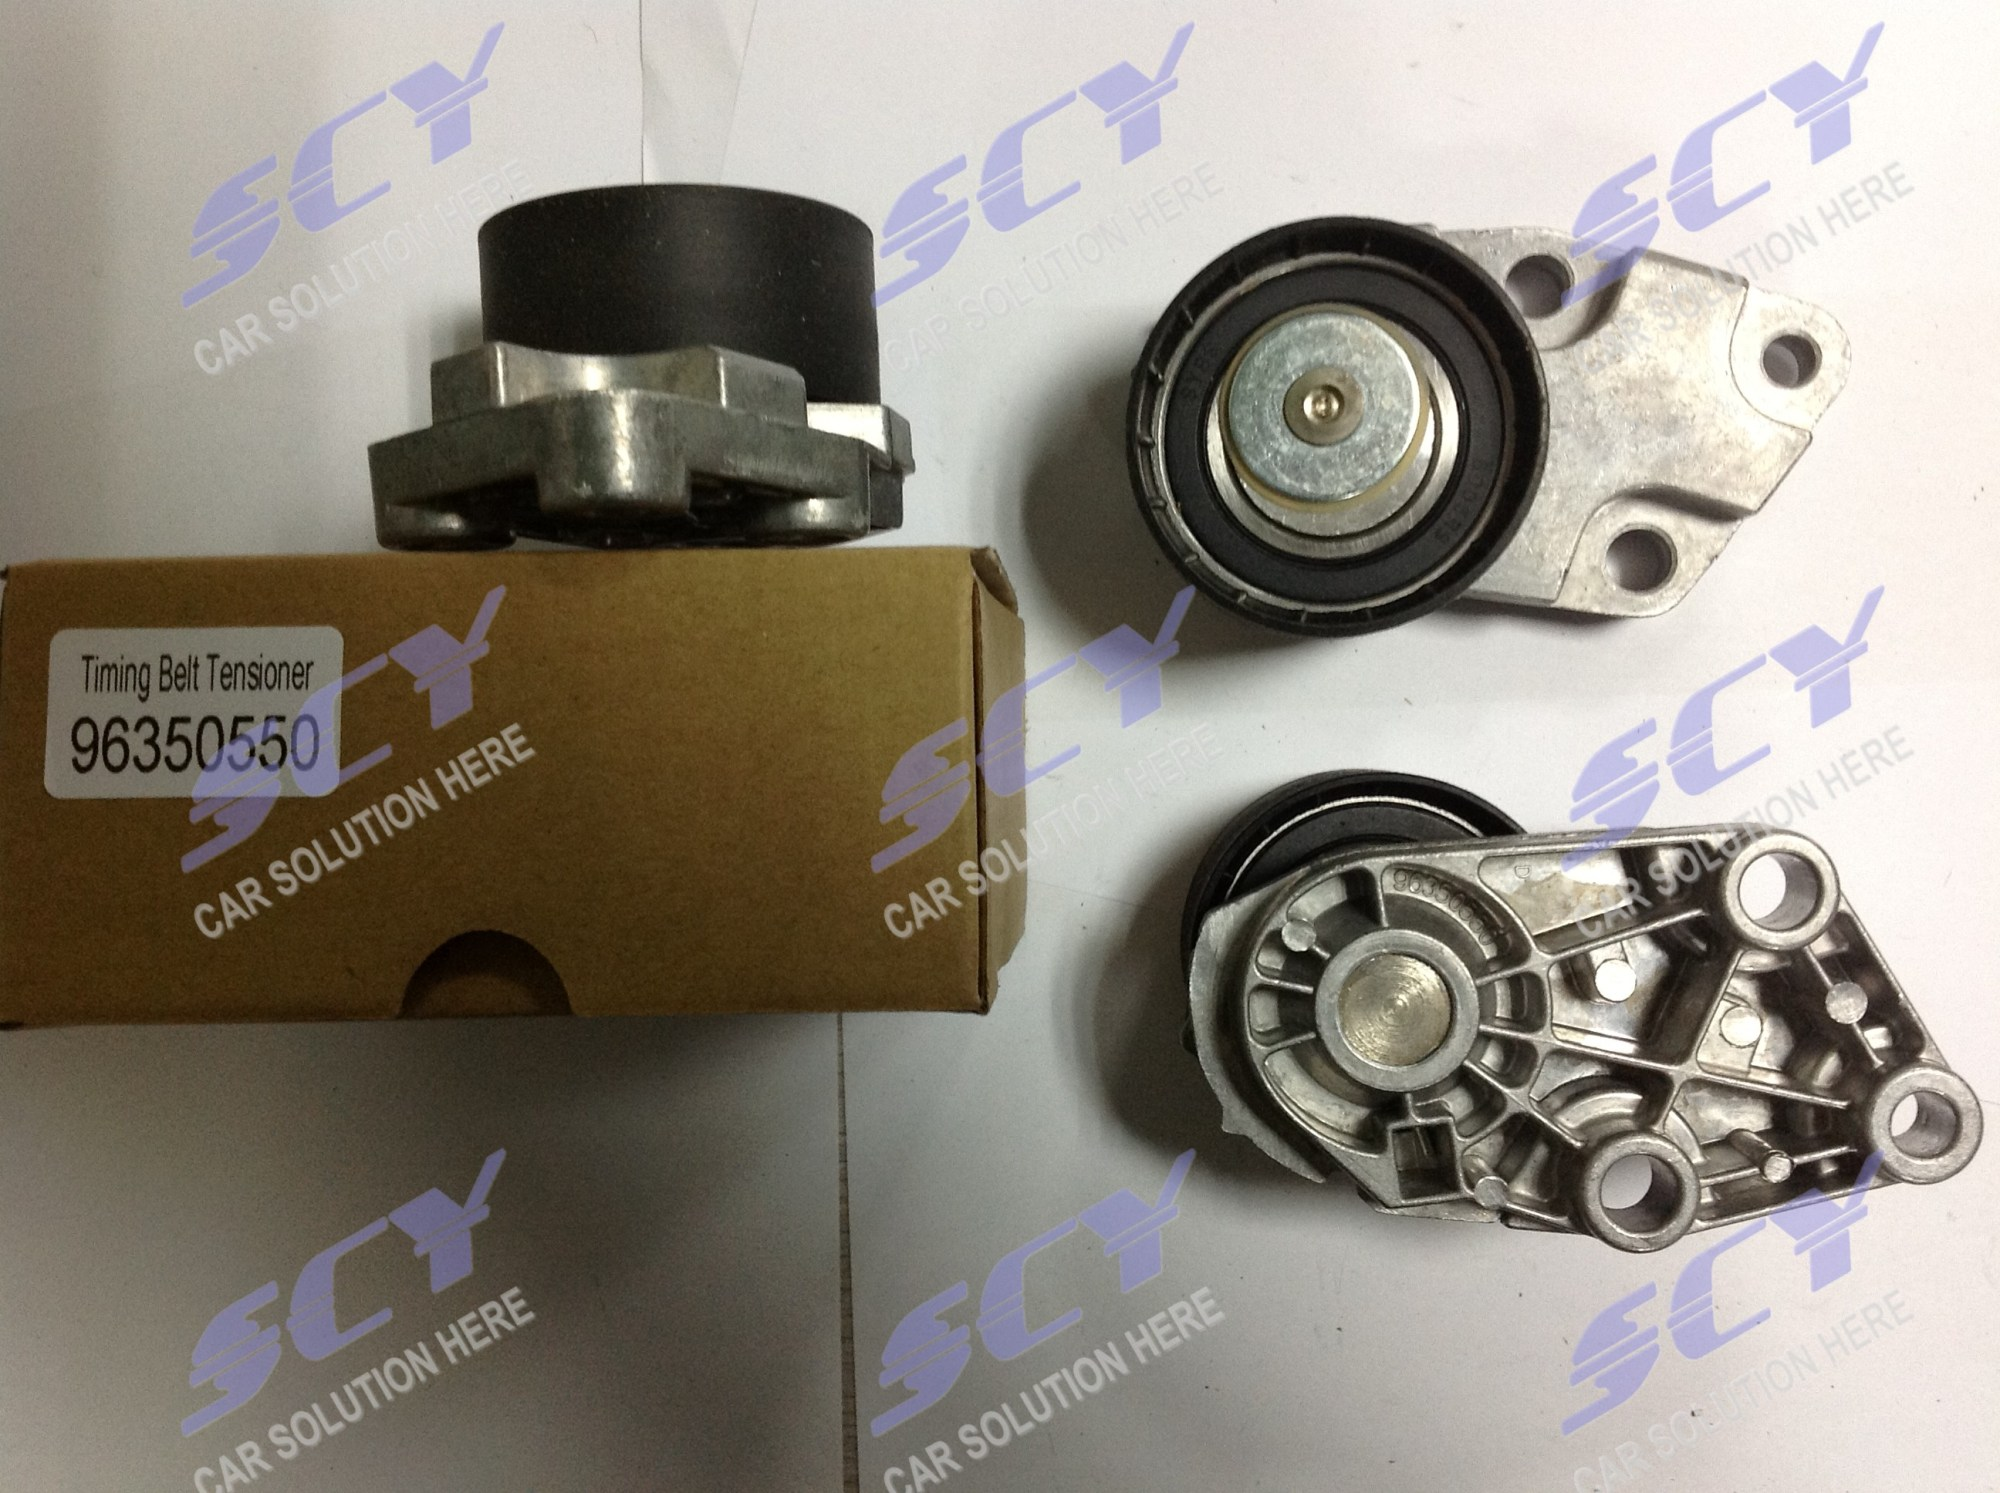 hight resolution of timing belt tensioner for chevrolet chevy aveo aveo5 96350550 25183772 oem number 96350550 25183772 shanghai jinyi industry trade co ltd